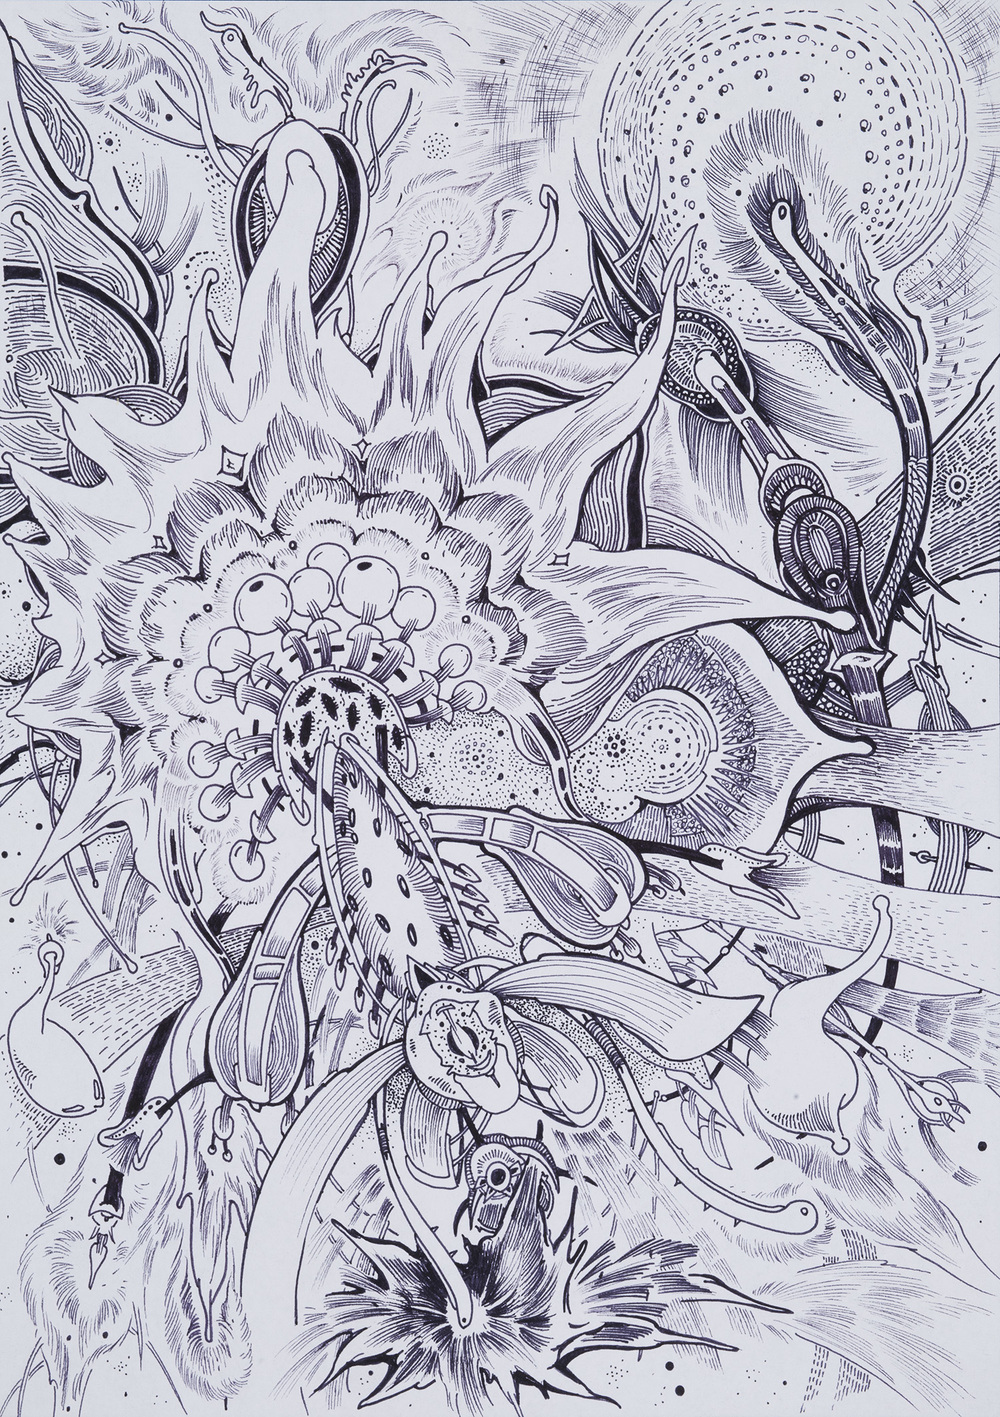 Jaroslav Čevora    kosmické babí léto / cosmic indian summer  , 2007 China ink on paper 11.81 x 8.27 inches 30 x 21 cm JCev 5